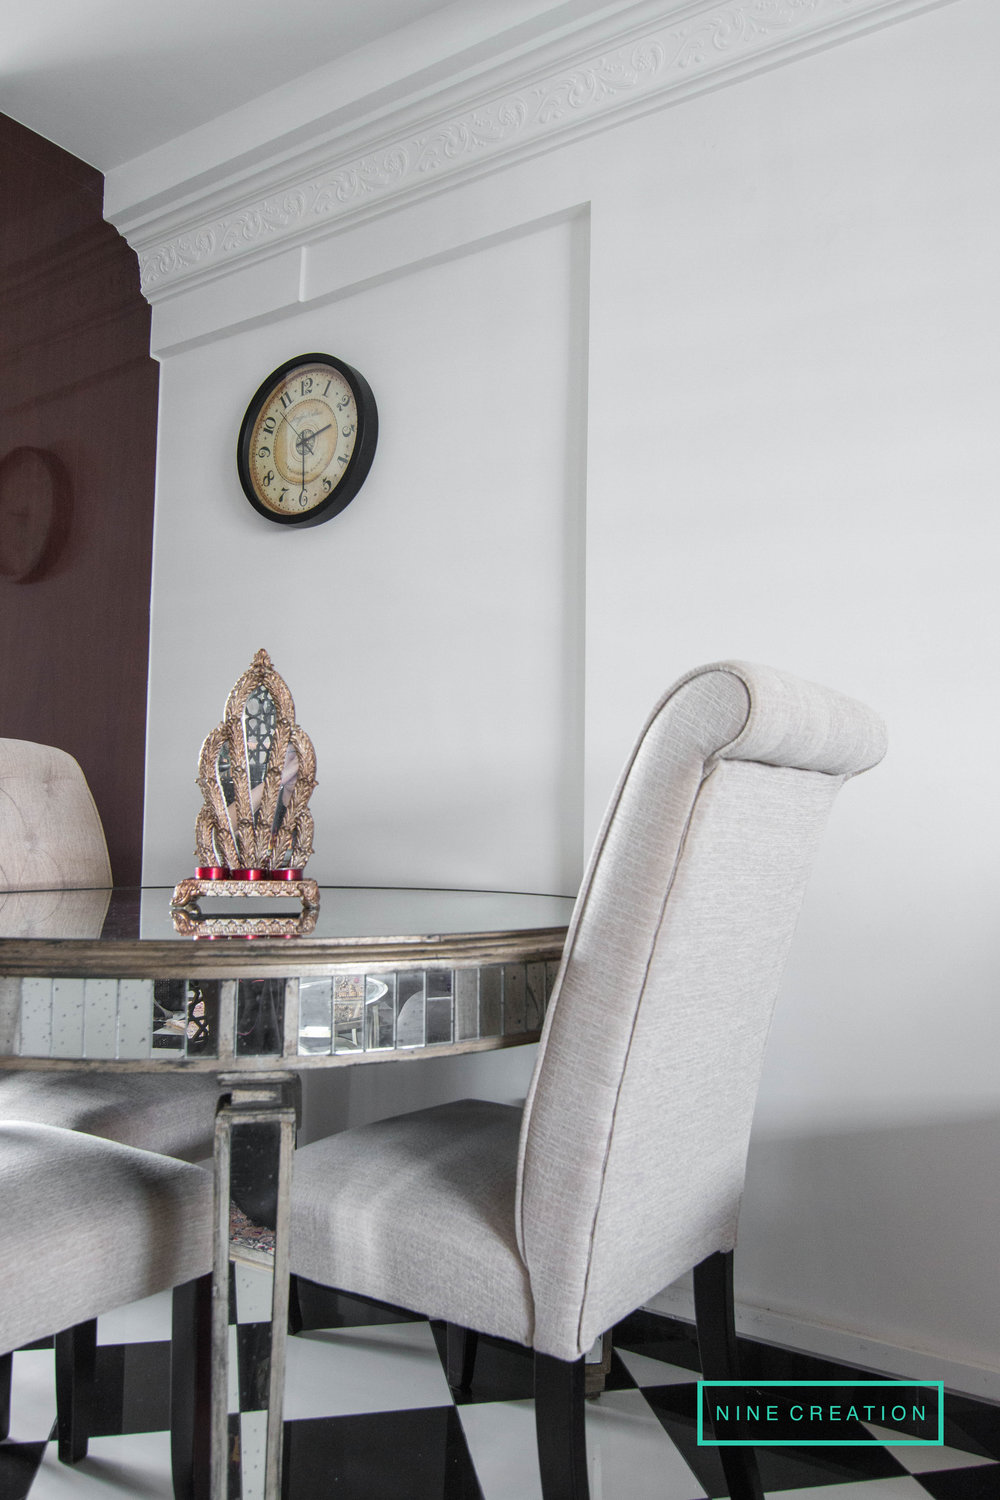 9Creation_513, Hougang Ave 10_dining table